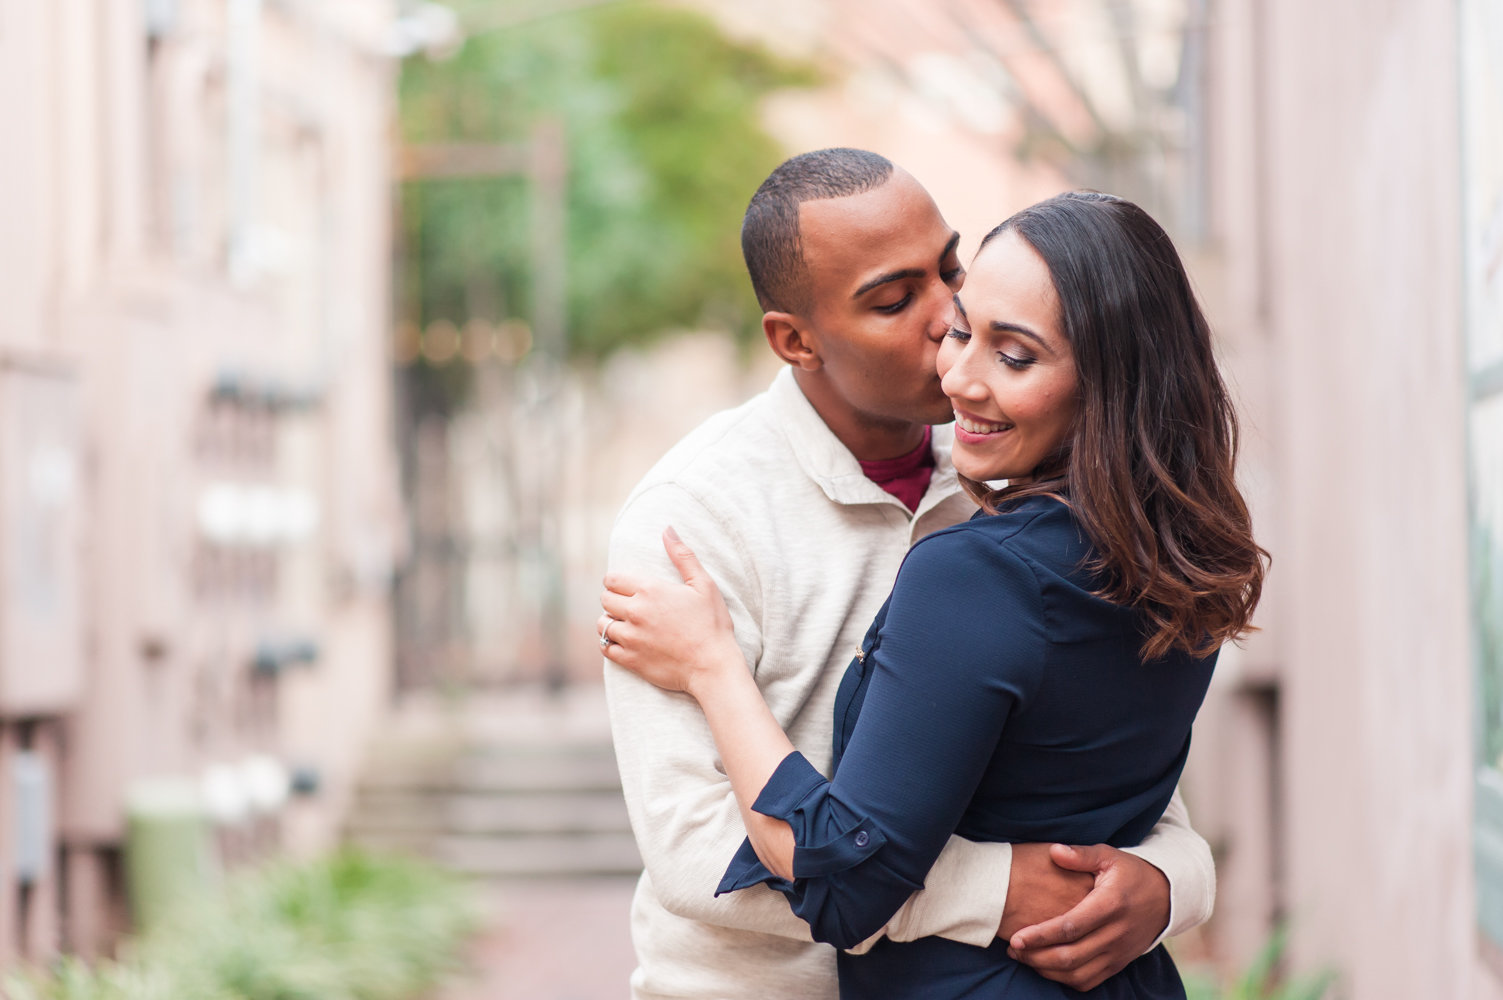 engagement-portraits-christina-forbes-photography-18